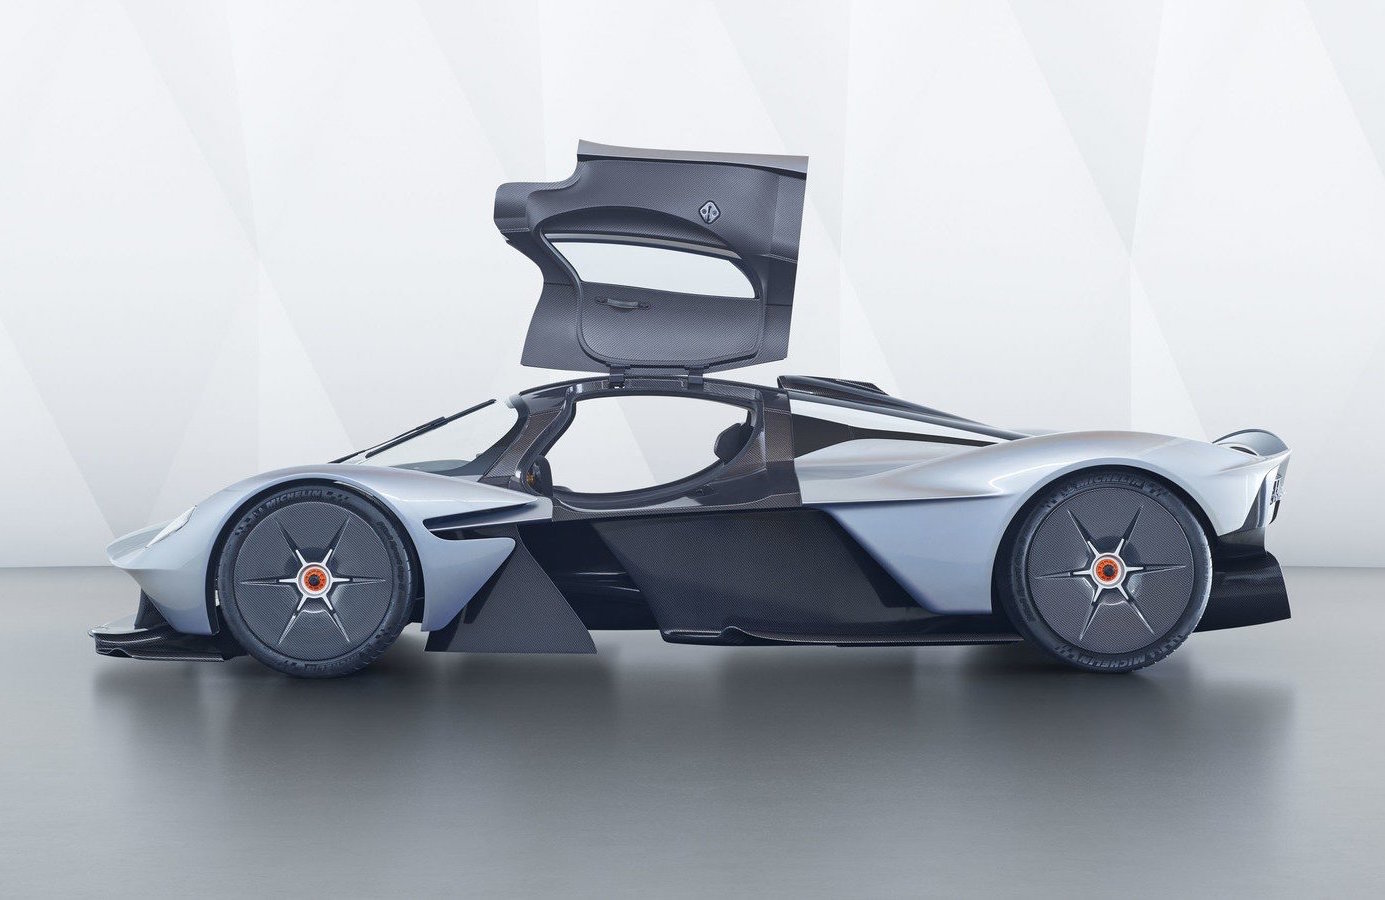 Aston Martin Valkyrie A Pure Hypercar Exotic Car List - Build your own aston martin